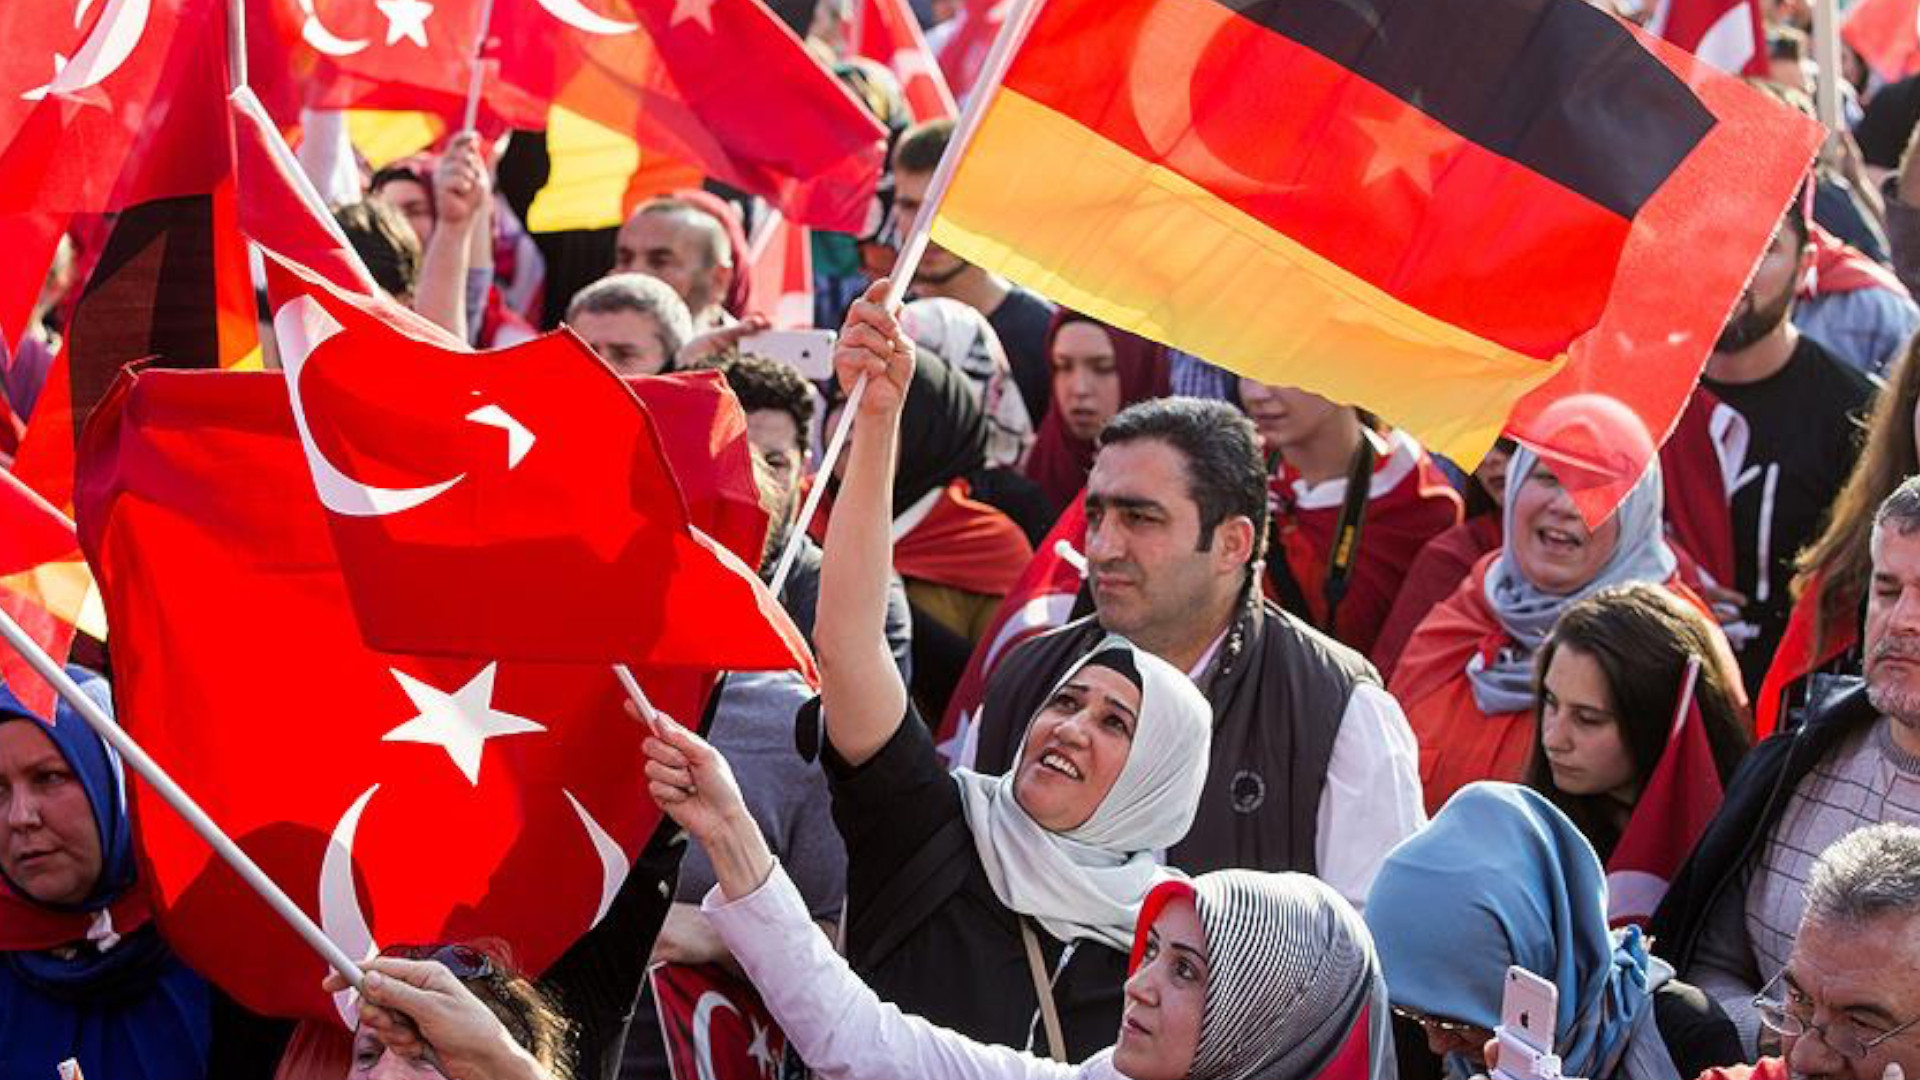 German elections and Turkey - Part 1: What do the party programs say?